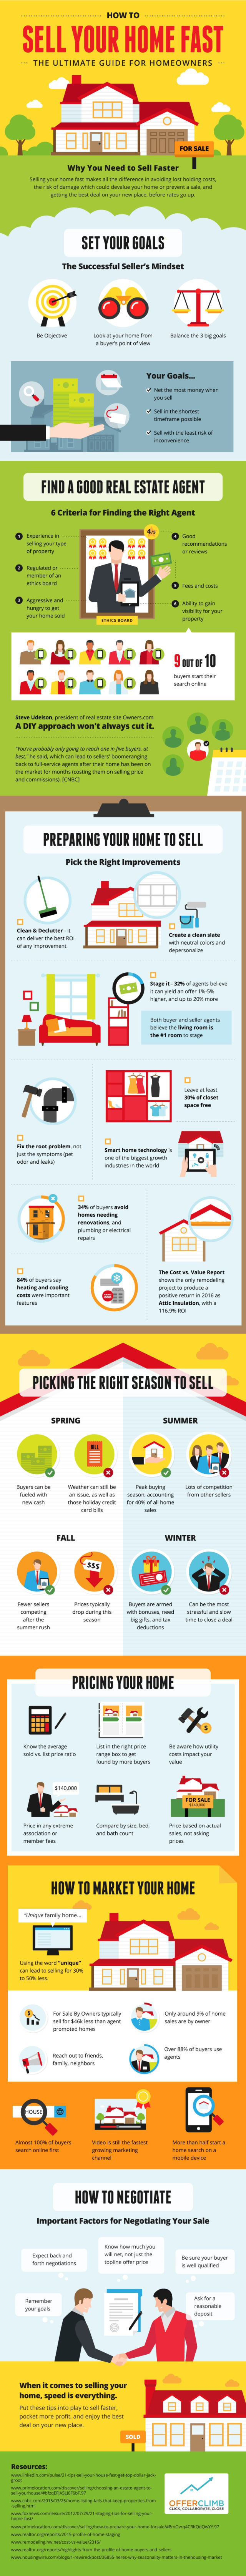 Sell your home fast - infographic